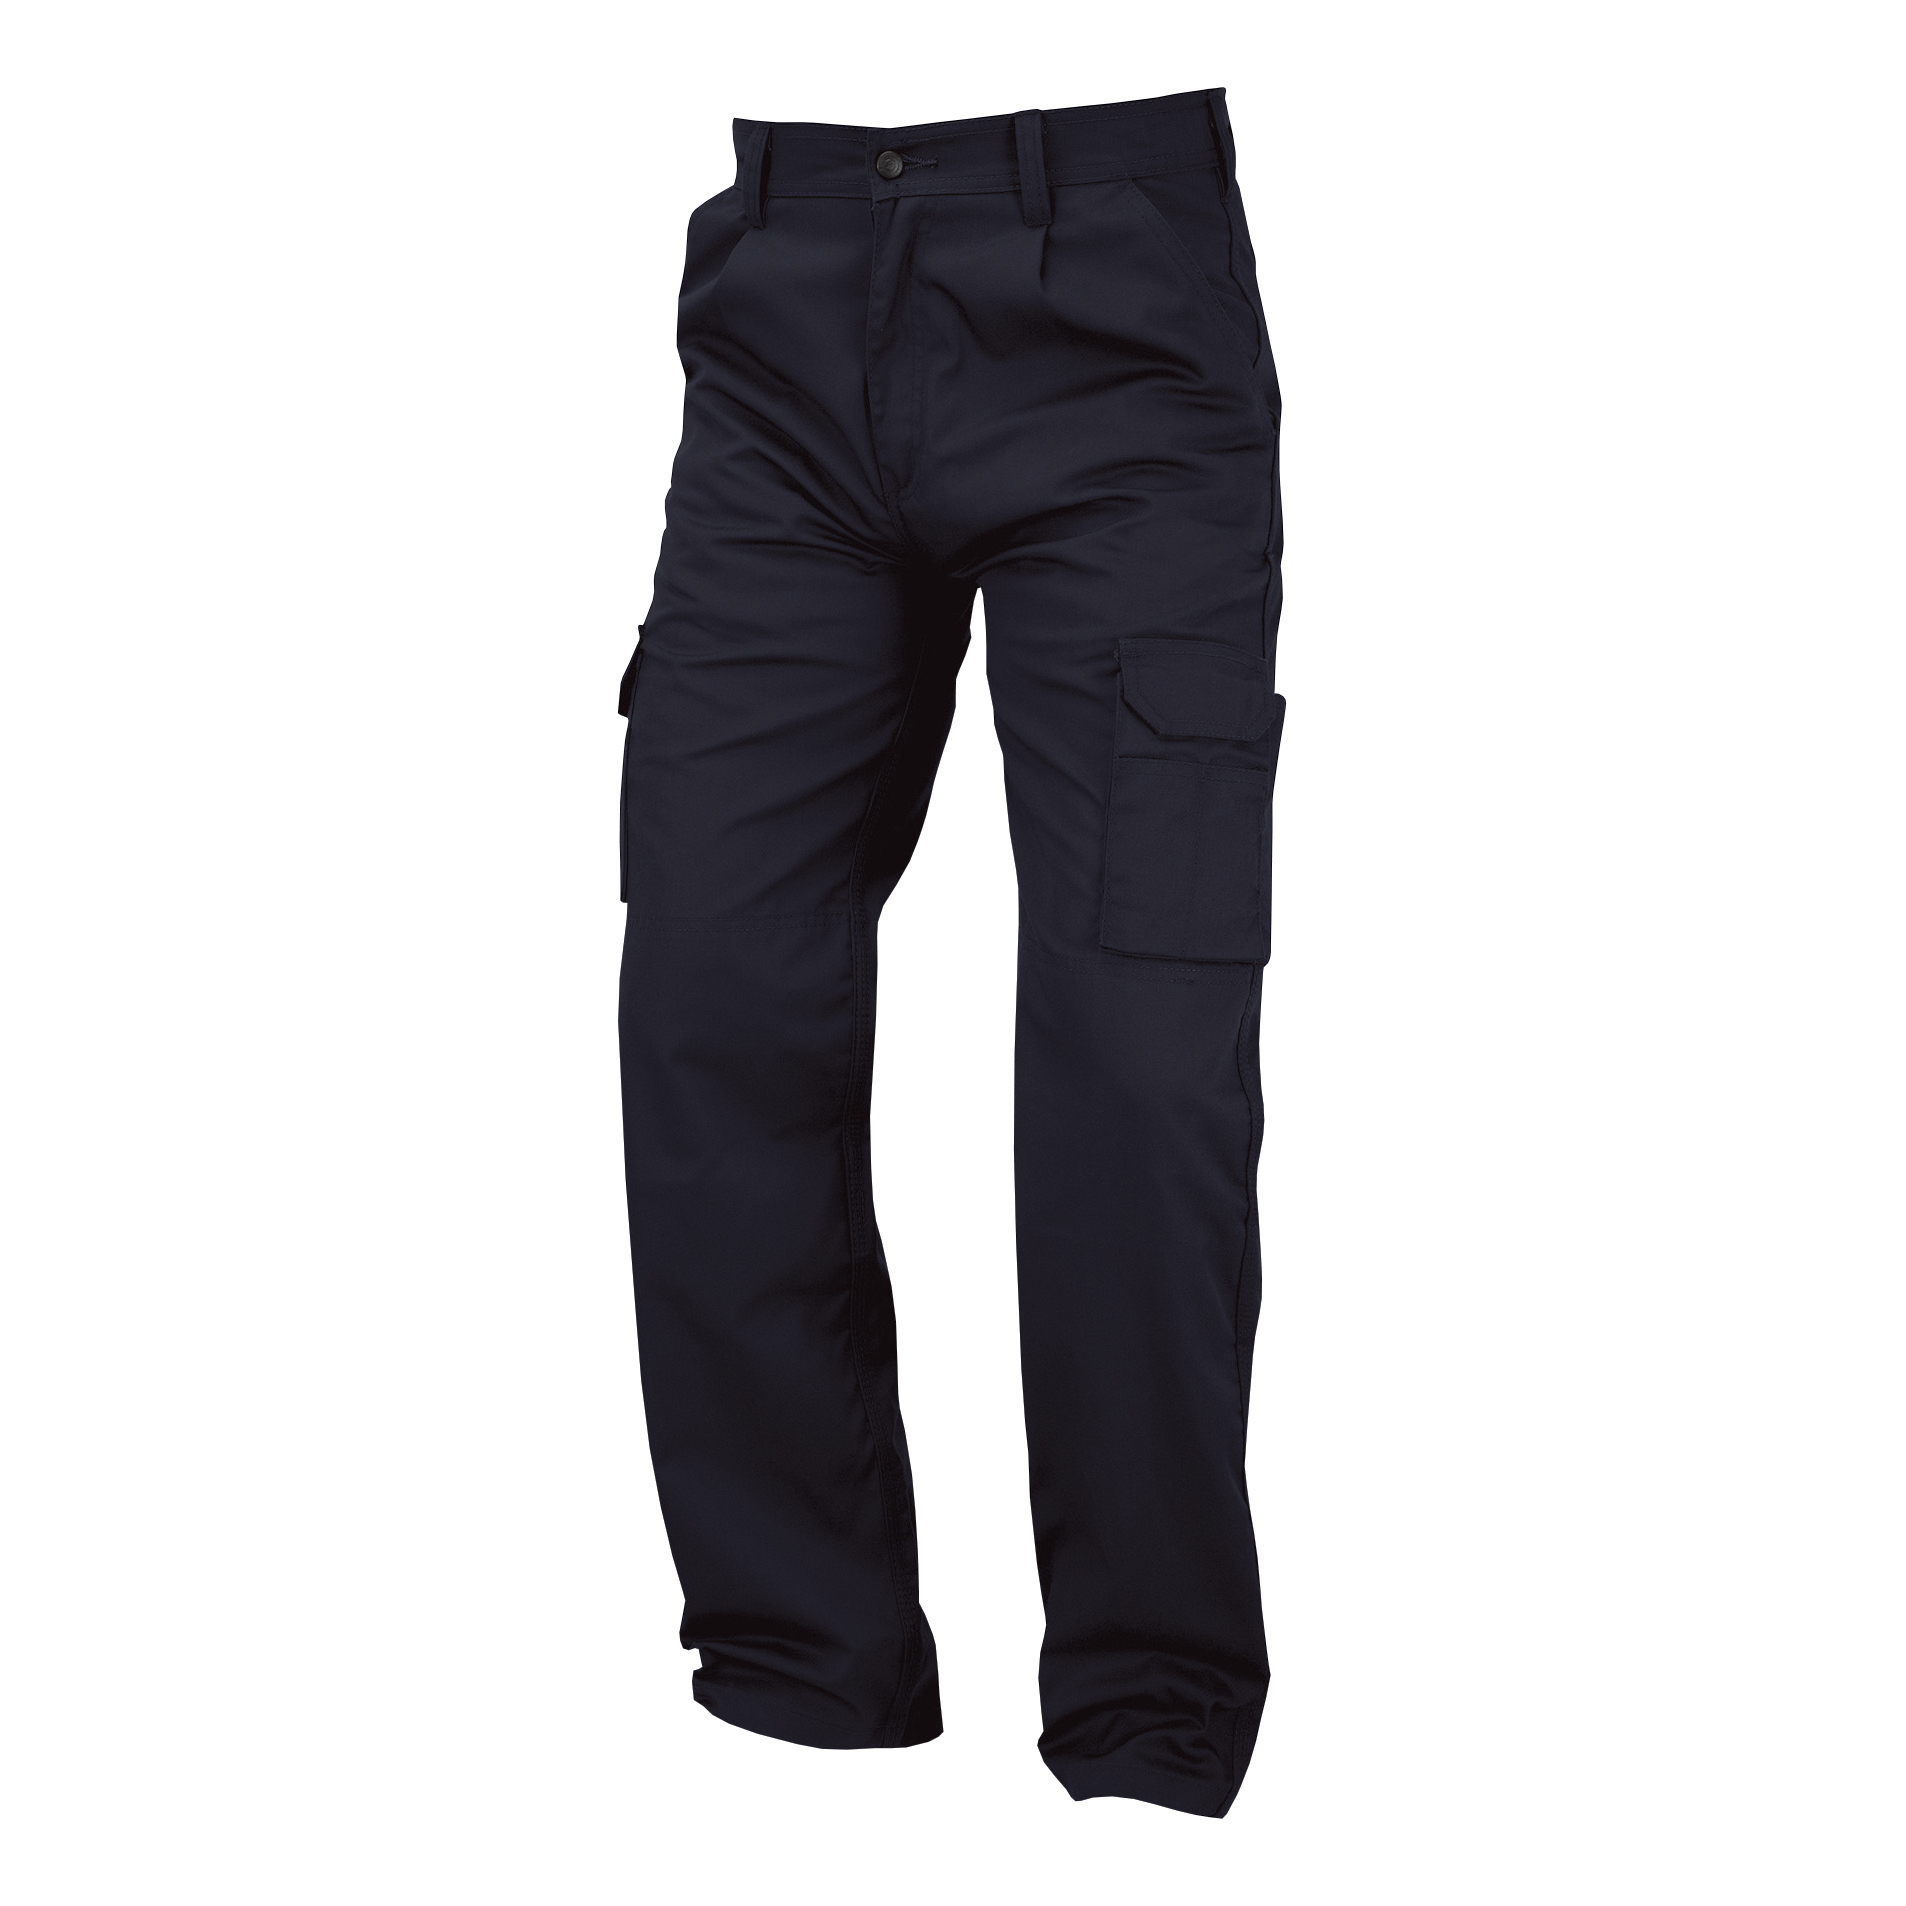 Business Kneepad Combat Trouser Multi-functional Waist 28in Leg 35in Navy